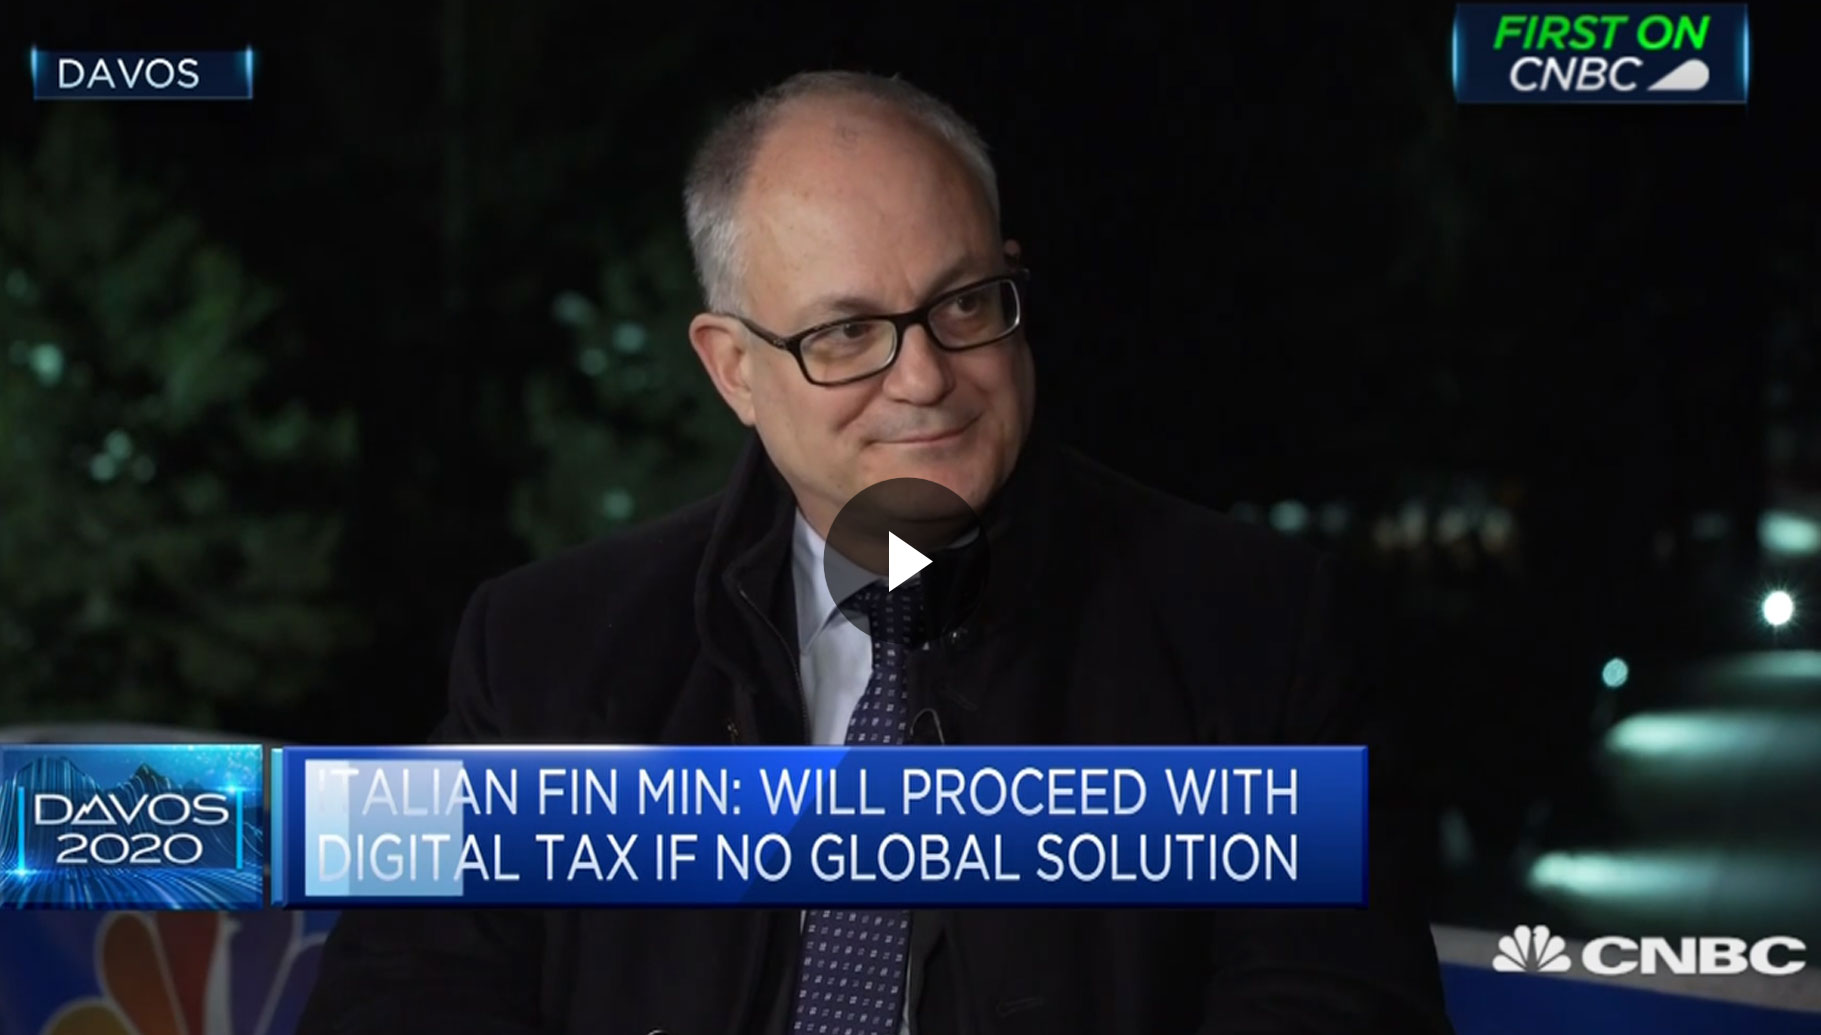 Roberto Gualtieri's interview with CNBC on the sidelines of the World Economic Forum in Davos